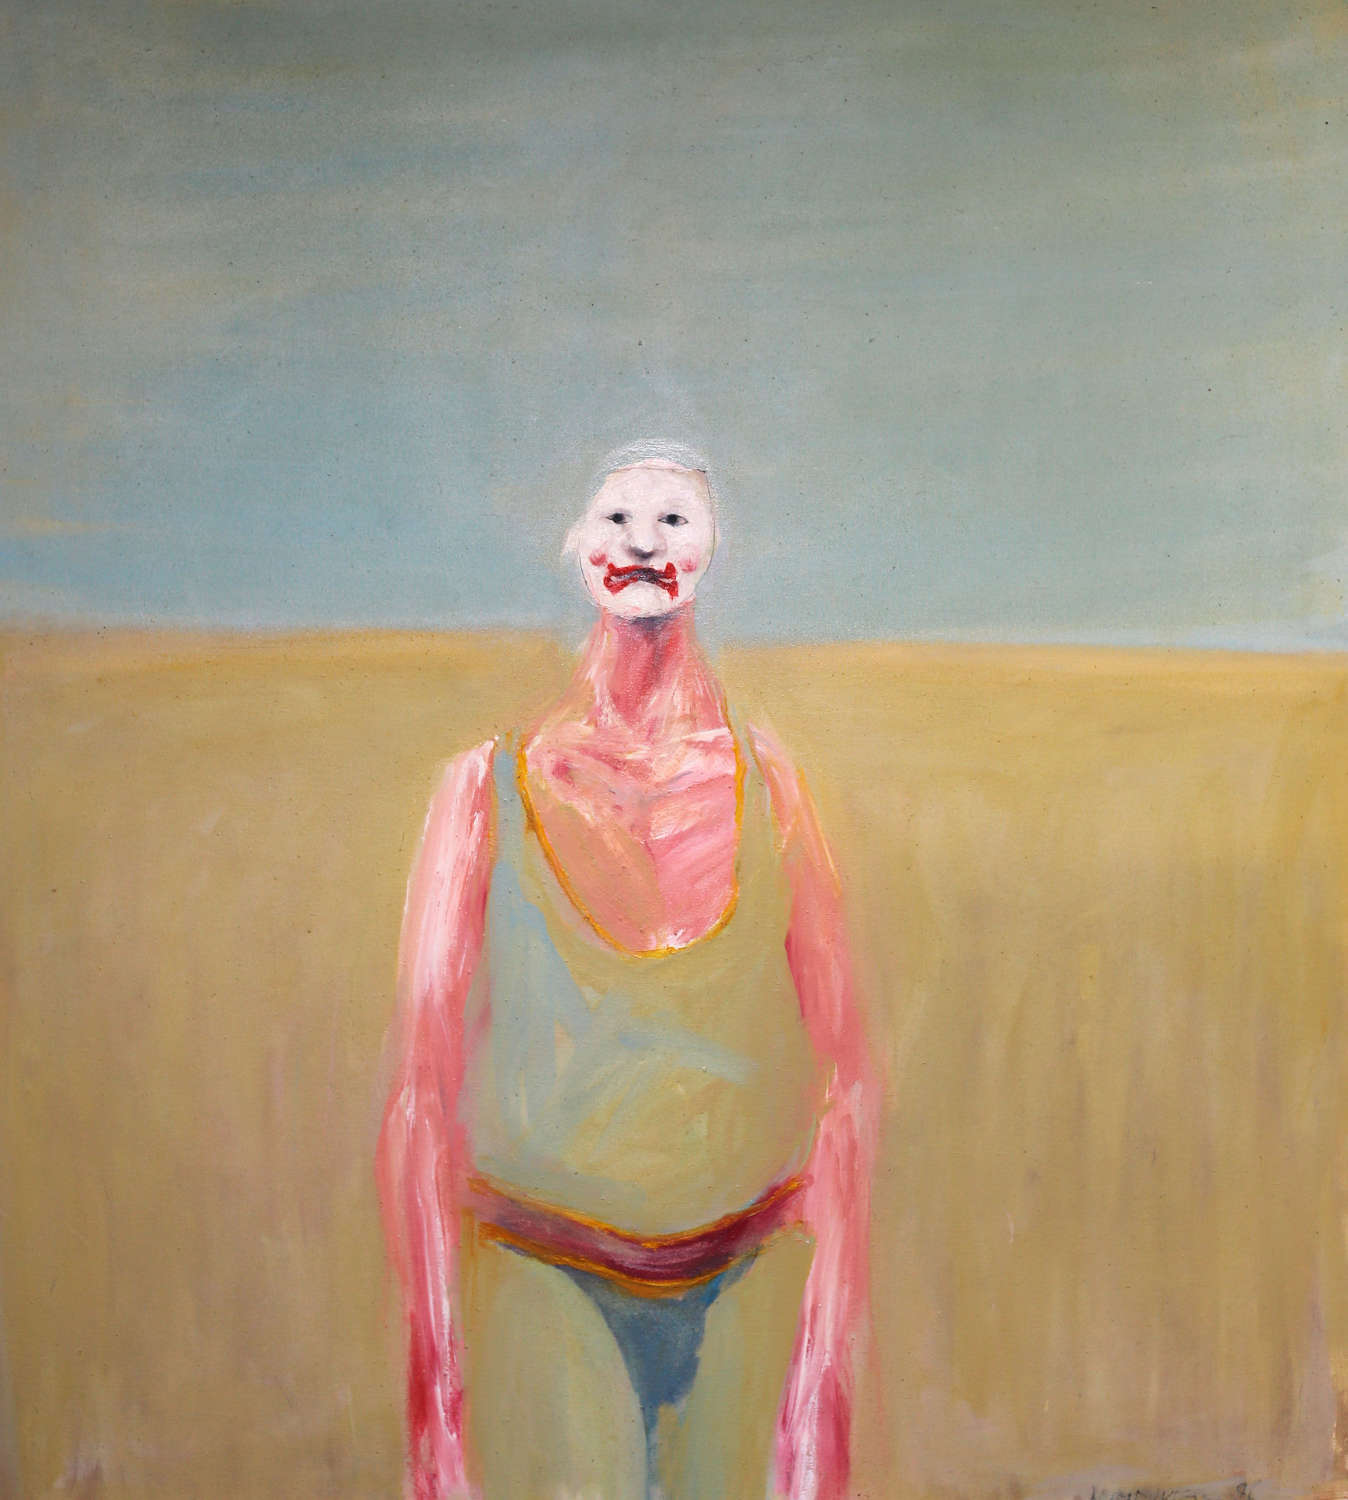 The Clown painting by Ian Humphreys dated 1986